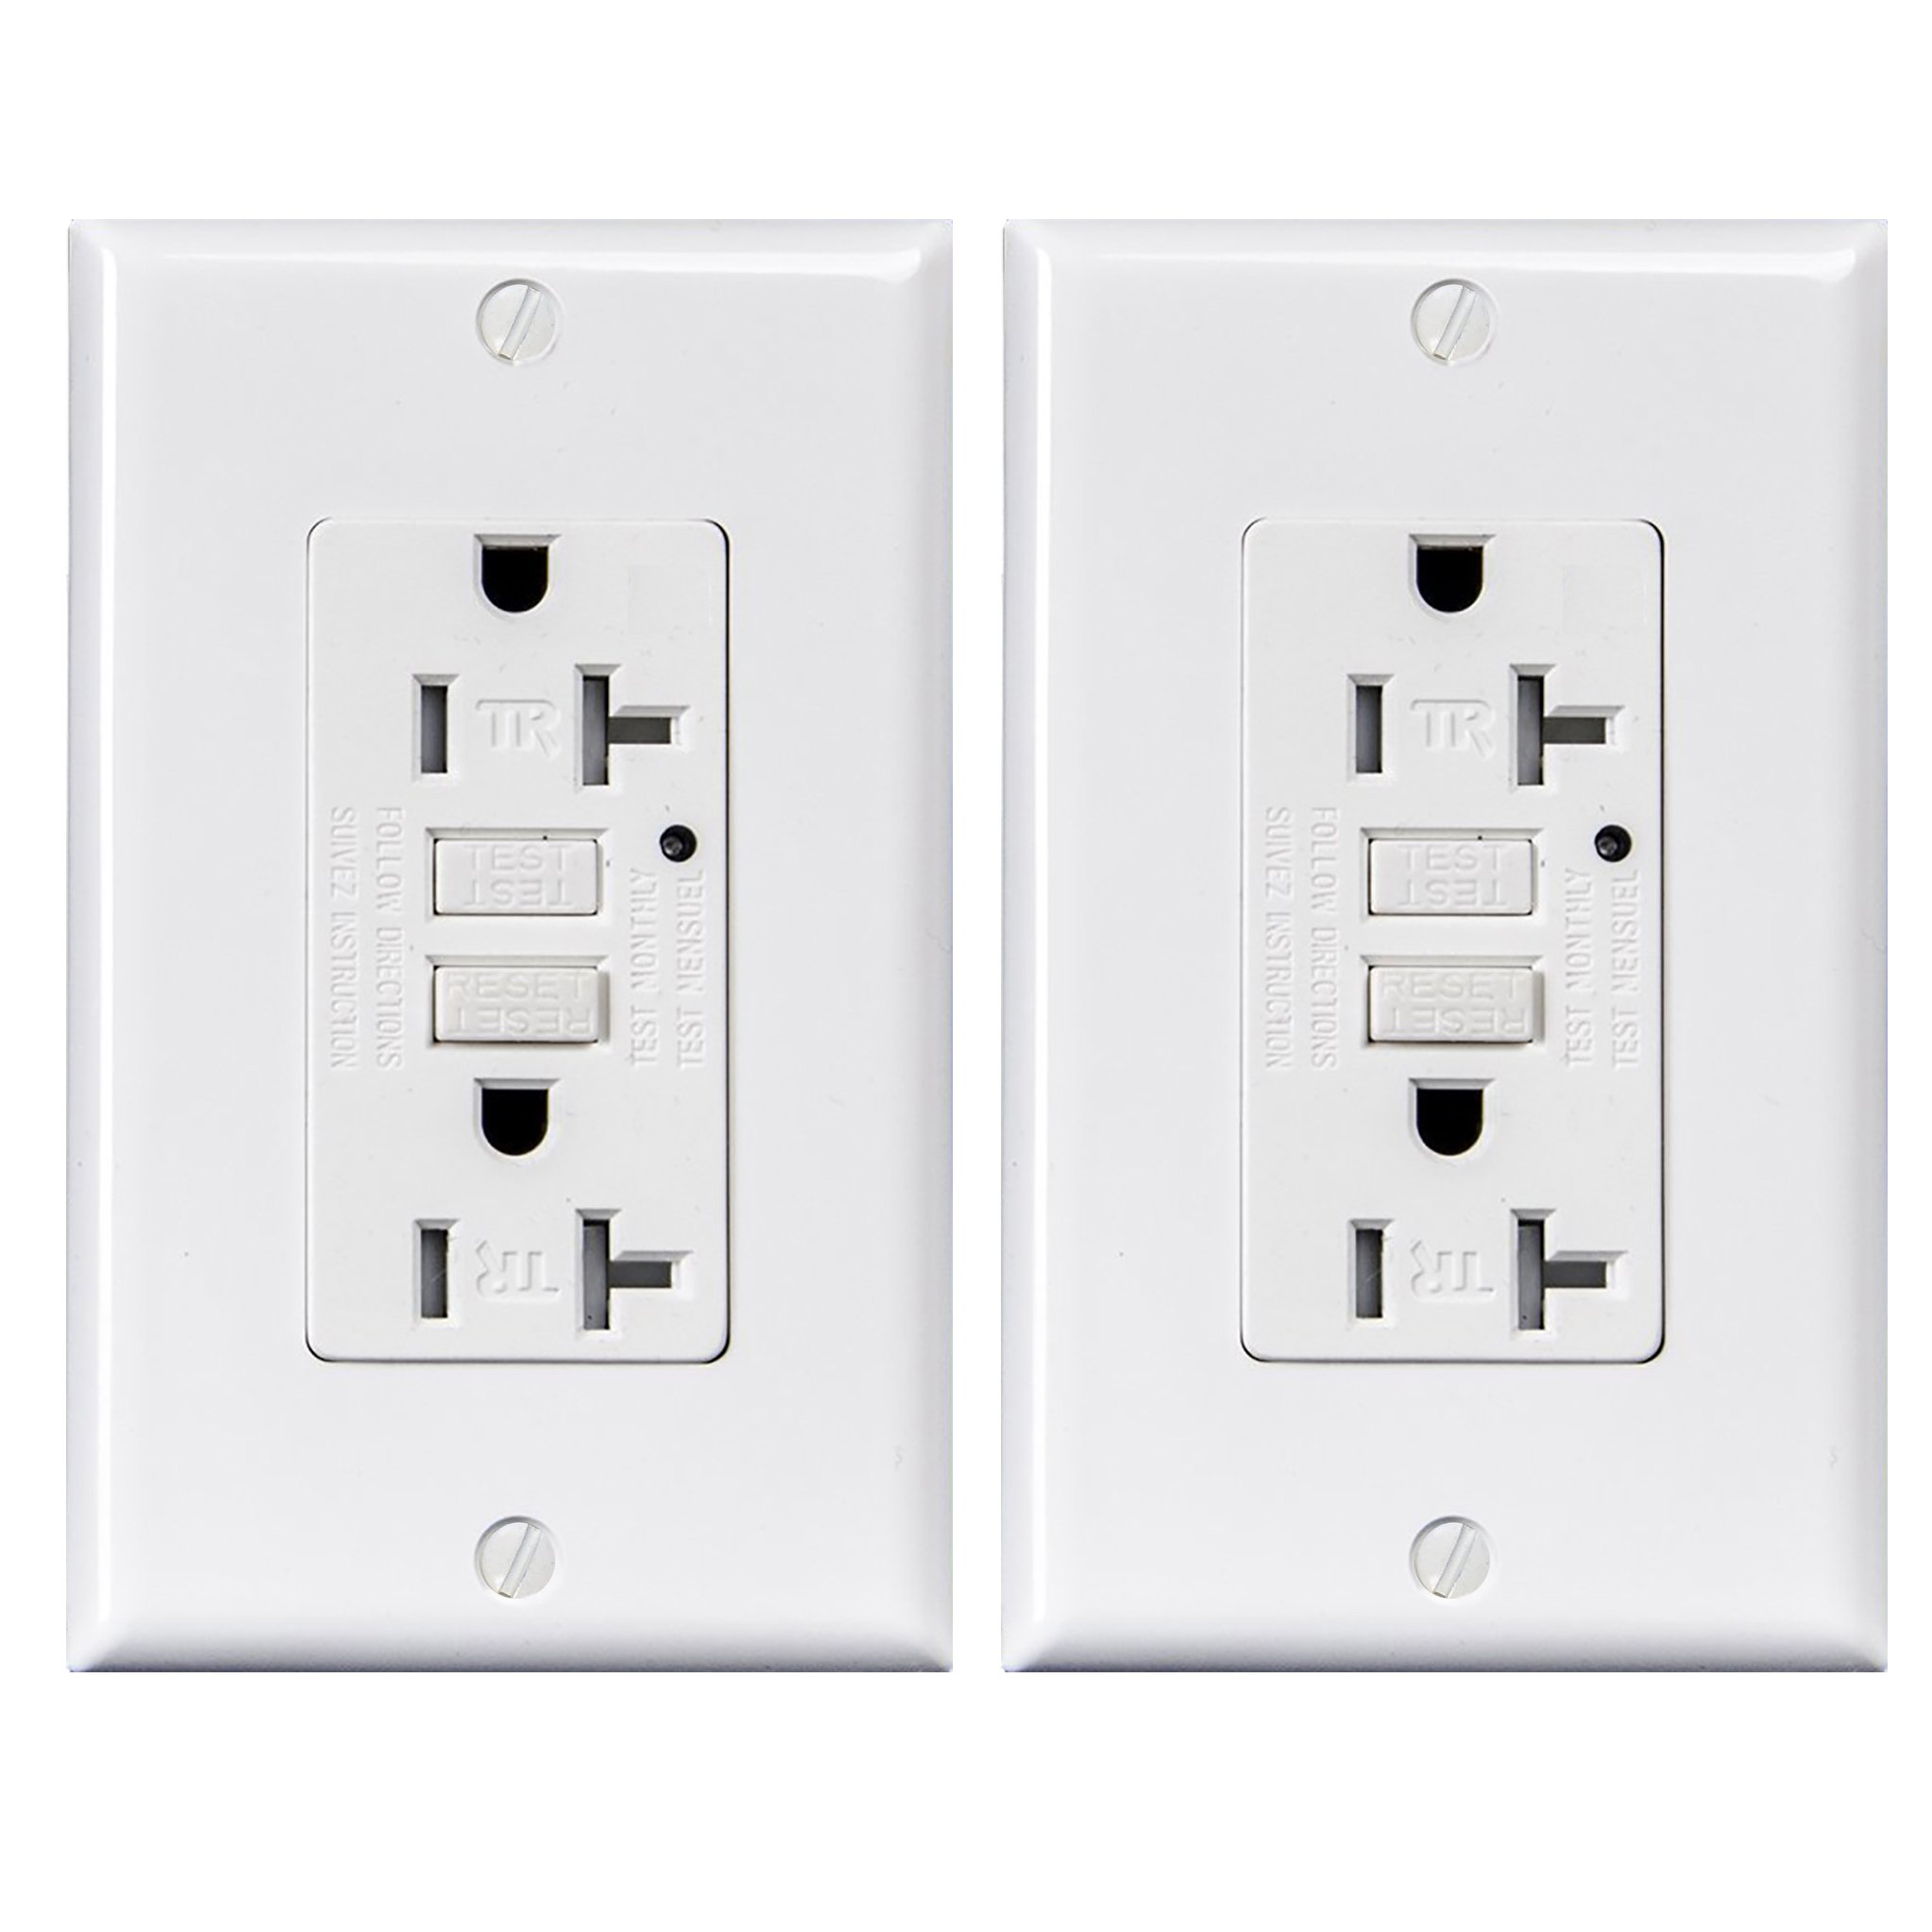 Cheap Gfci Outlet Find Deals On Line At Alibabacom An Overview Of Groundfault Circuit Interrupter Eep Get Quotations 20 Amp Tamper Resistant Receptacle With Led Indicator 125 Volt Wallplate And